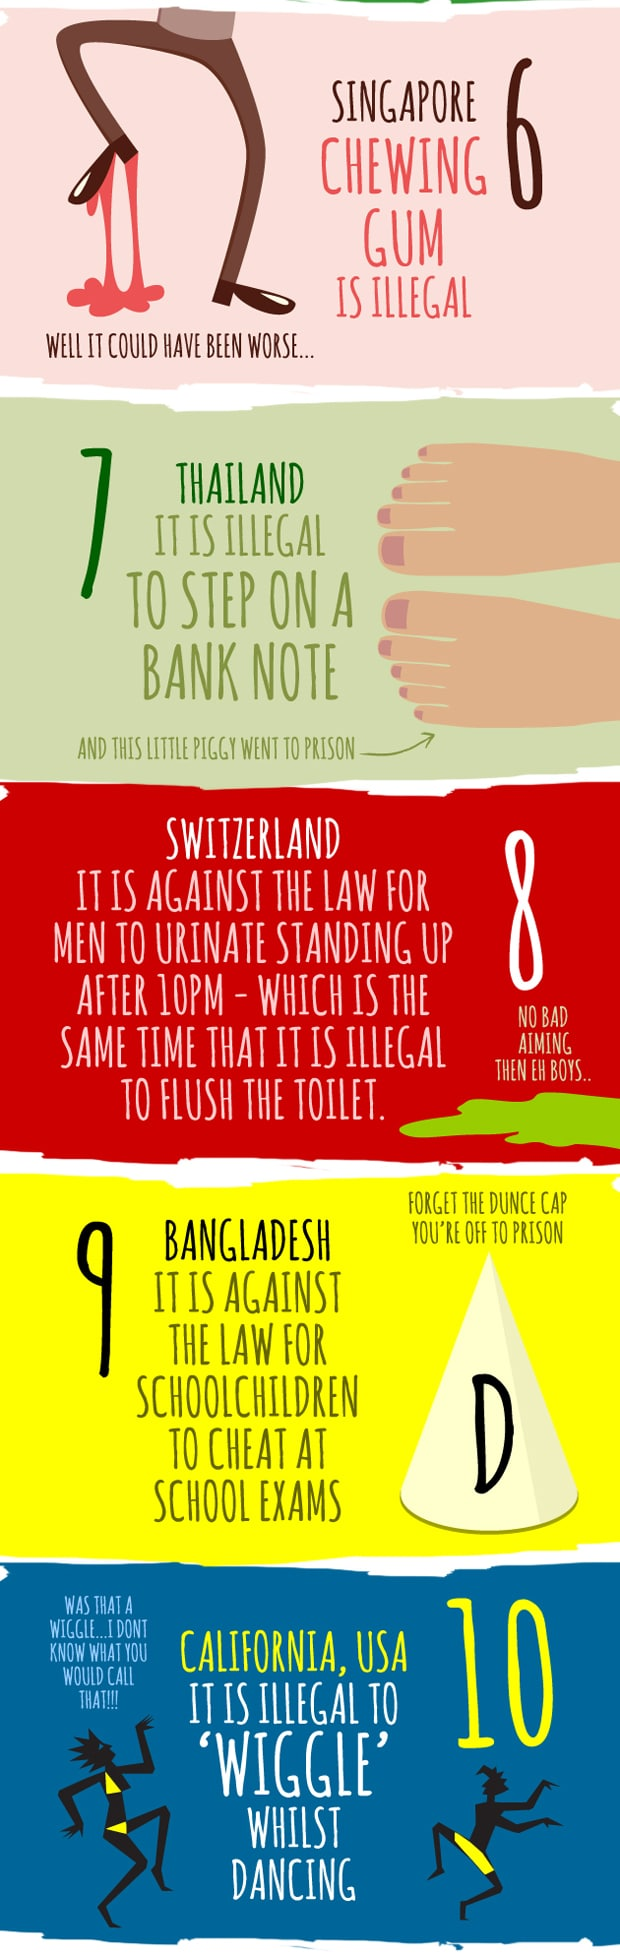 The strangest laws of the world